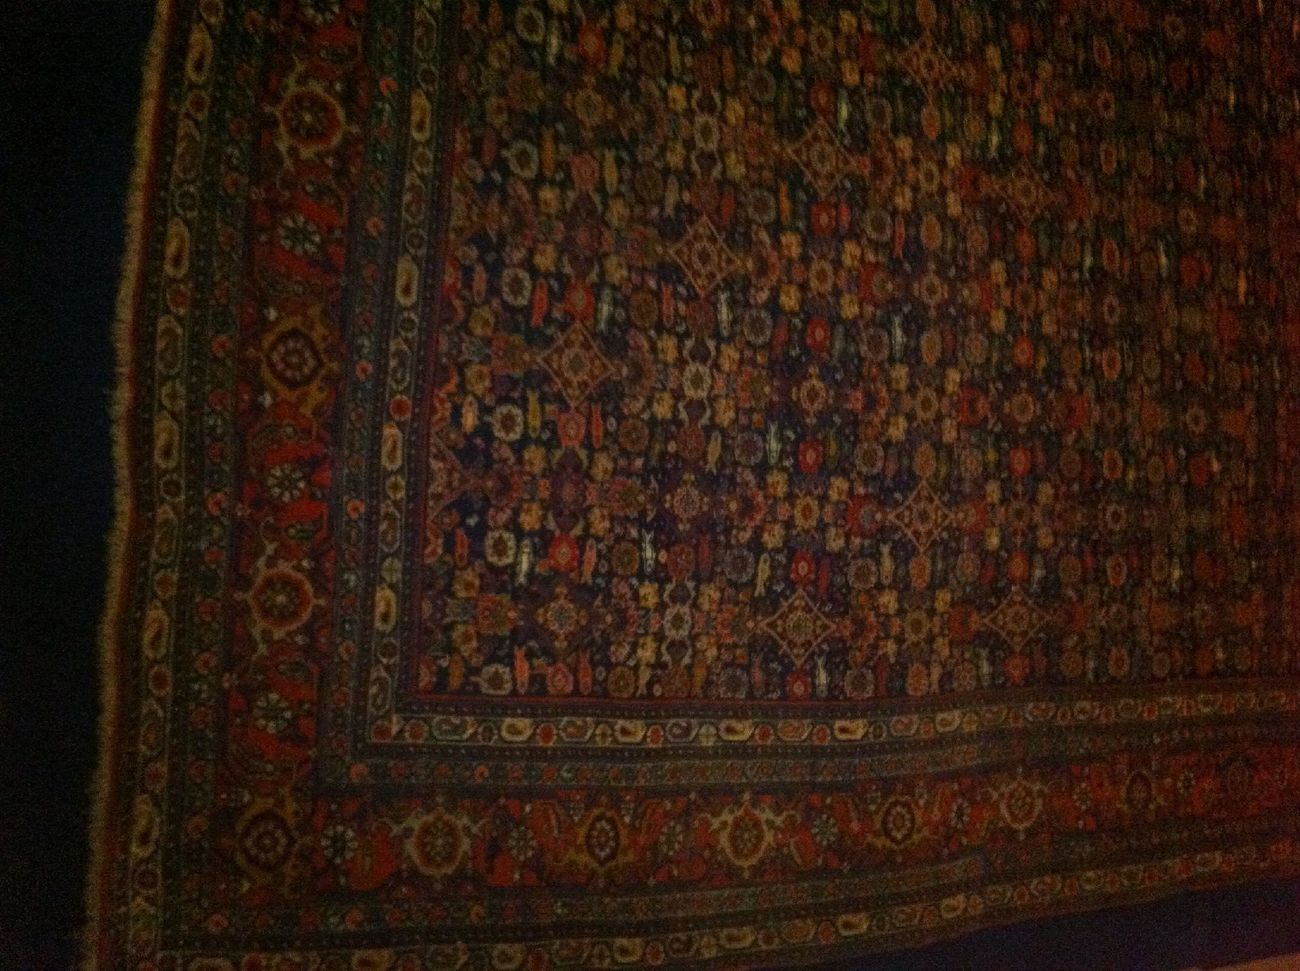 A Precious Bidjar Carpet In The Tehran Carpet Museum. It's Twin Is In Our Byblos Home.